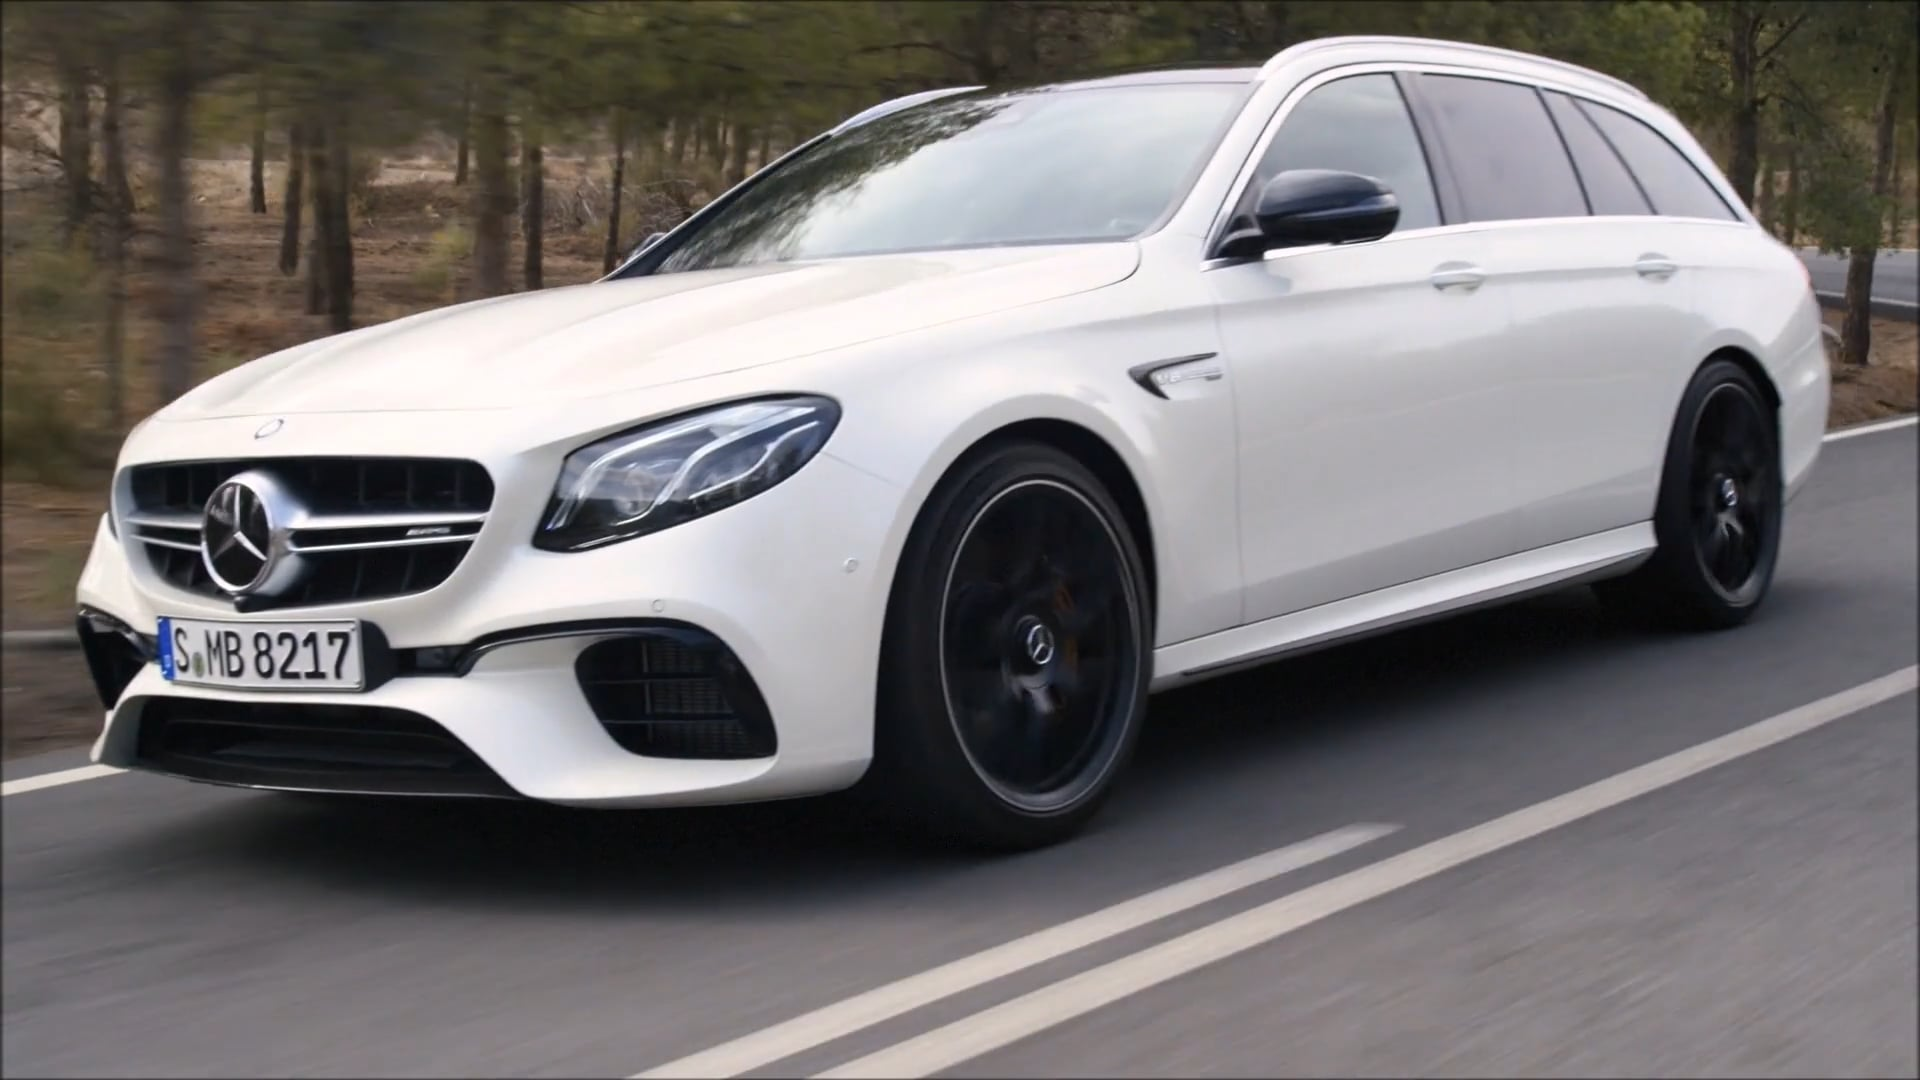 Overview: 2018 Mercedes-AMG E63 S Wagon